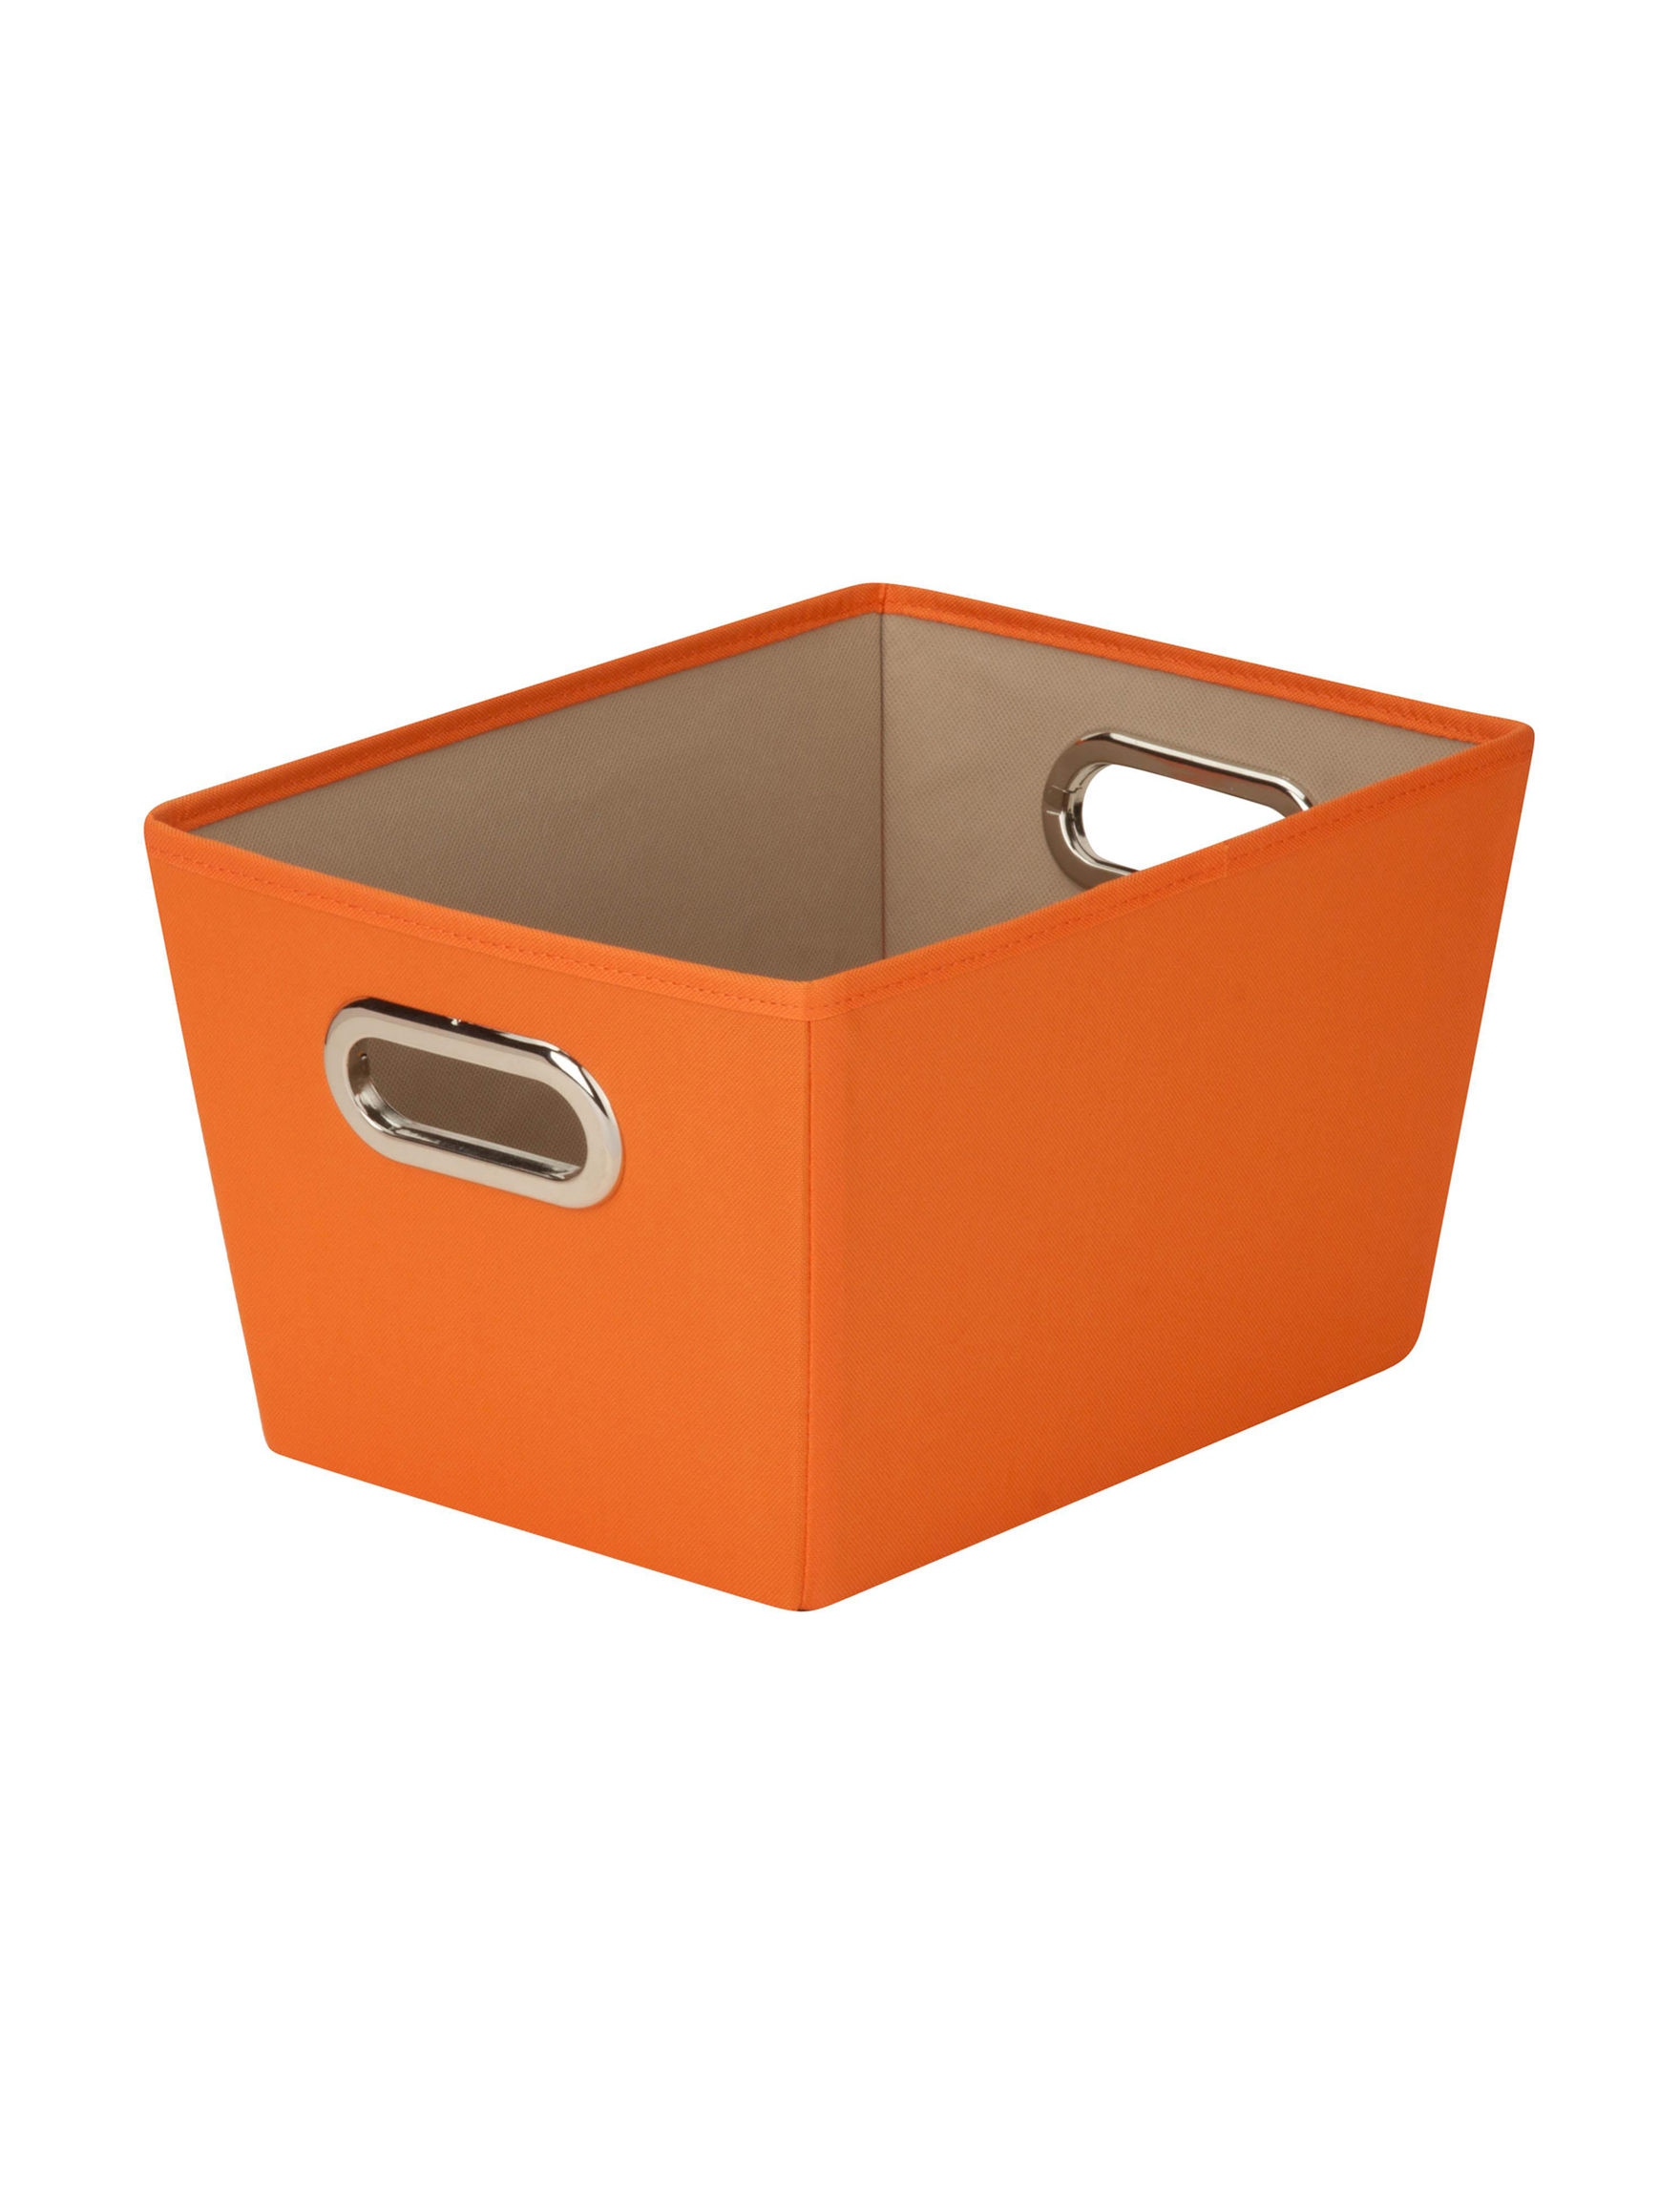 Honey-Can-Do International Orange Cubbies & Cubes Storage Bags & Boxes Storage & Organization